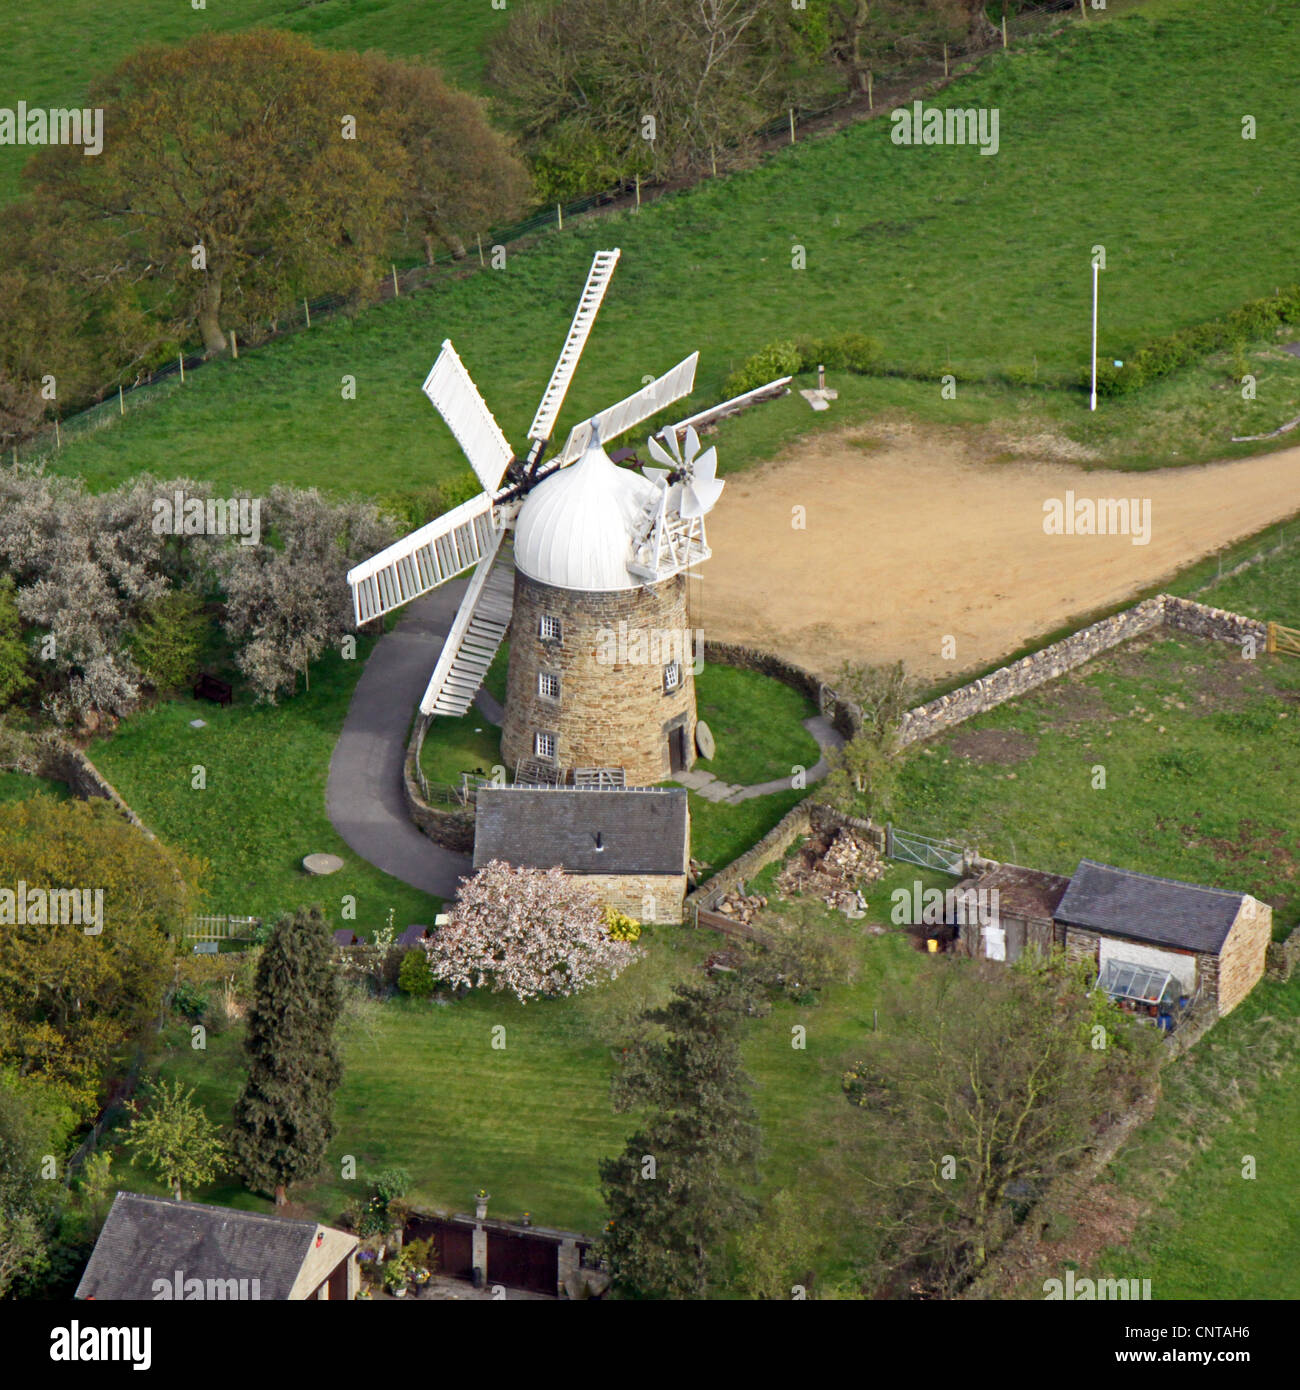 aerial view of a windmill which is a private house - Stock Image